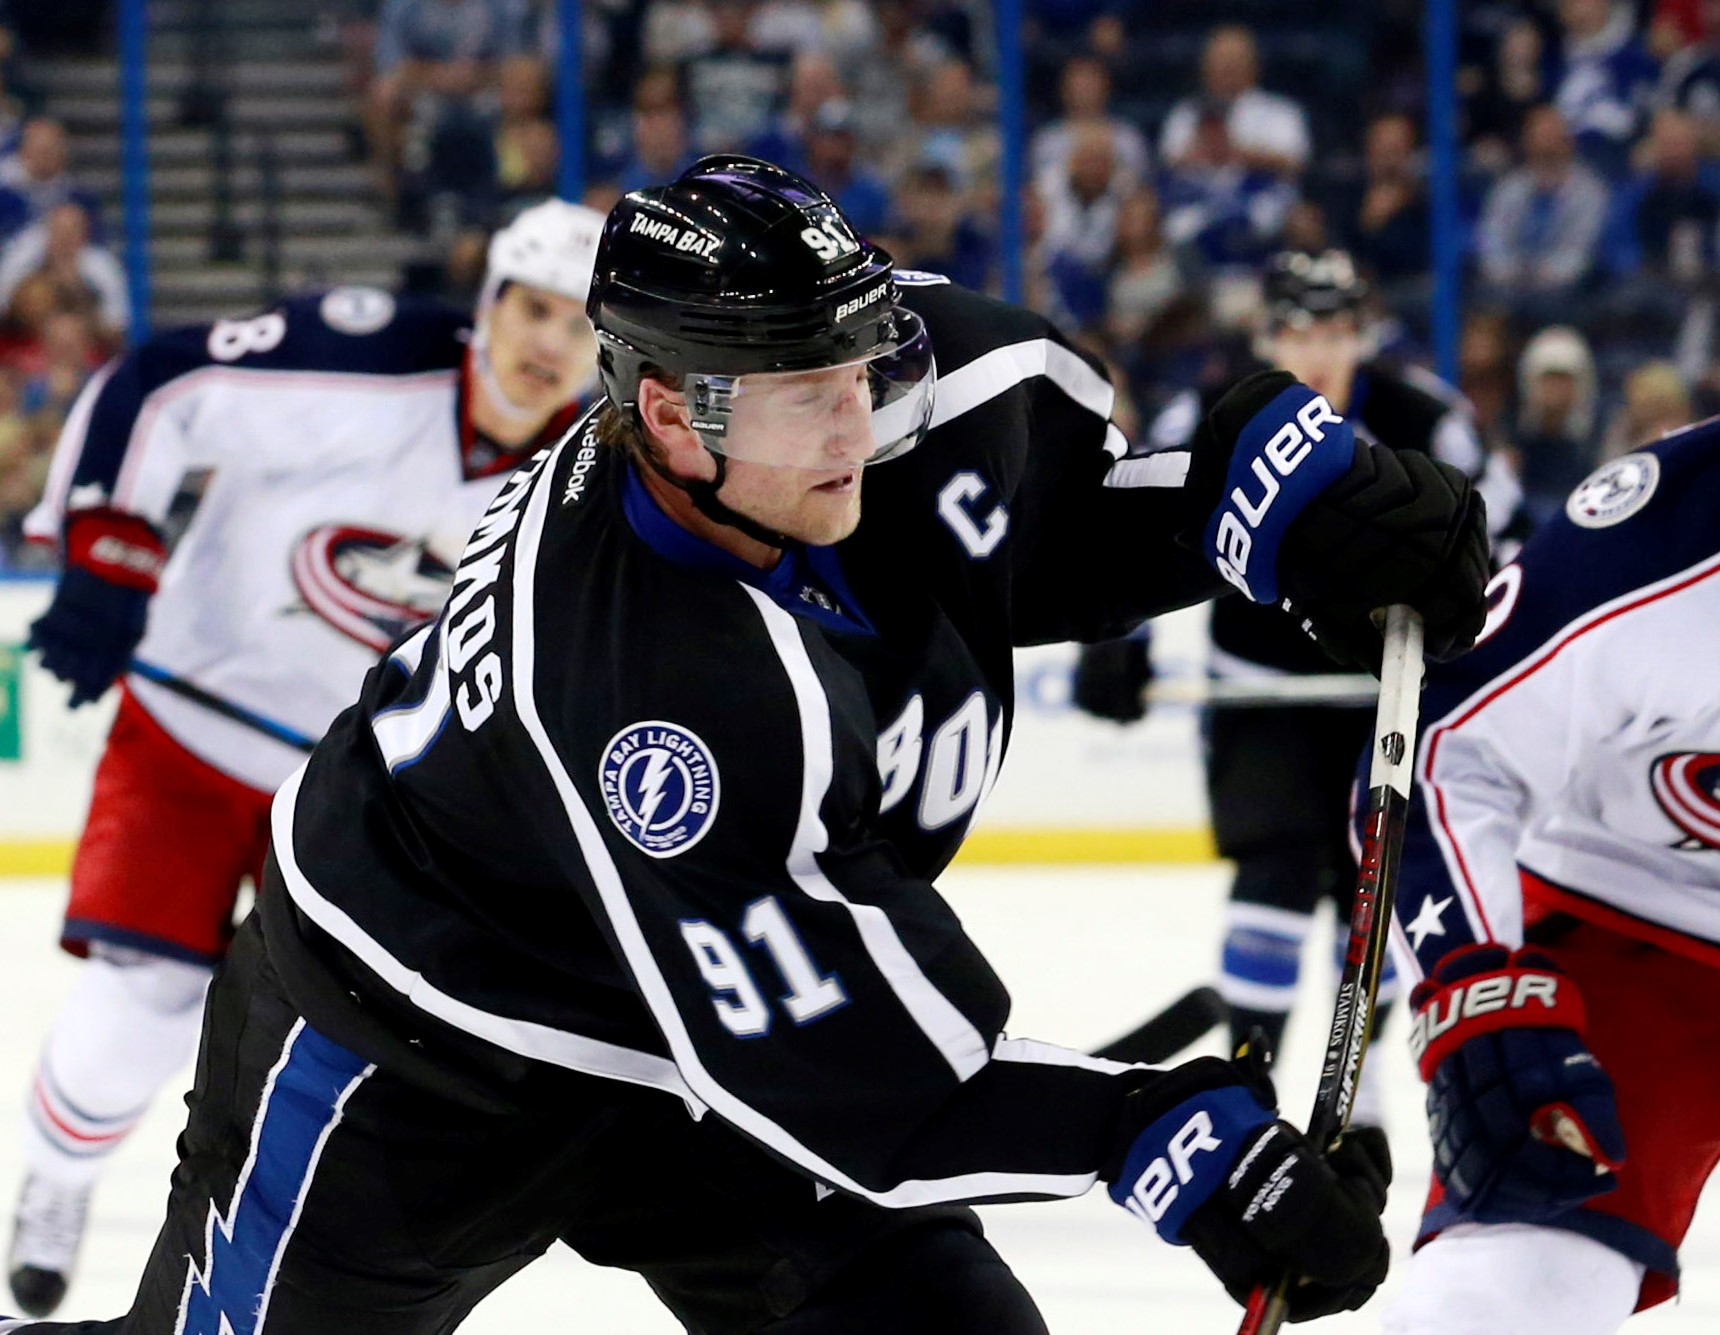 Dec 26, 2015; Tampa, FL, USA; Tampa Bay Lightning center Steven Stamkos (91) shoots the puck to score a goal against the Columbus Blue Jackets during the second period at Amalie Arena. Mandatory Credit: Kim Klement-USA TODAY Sports